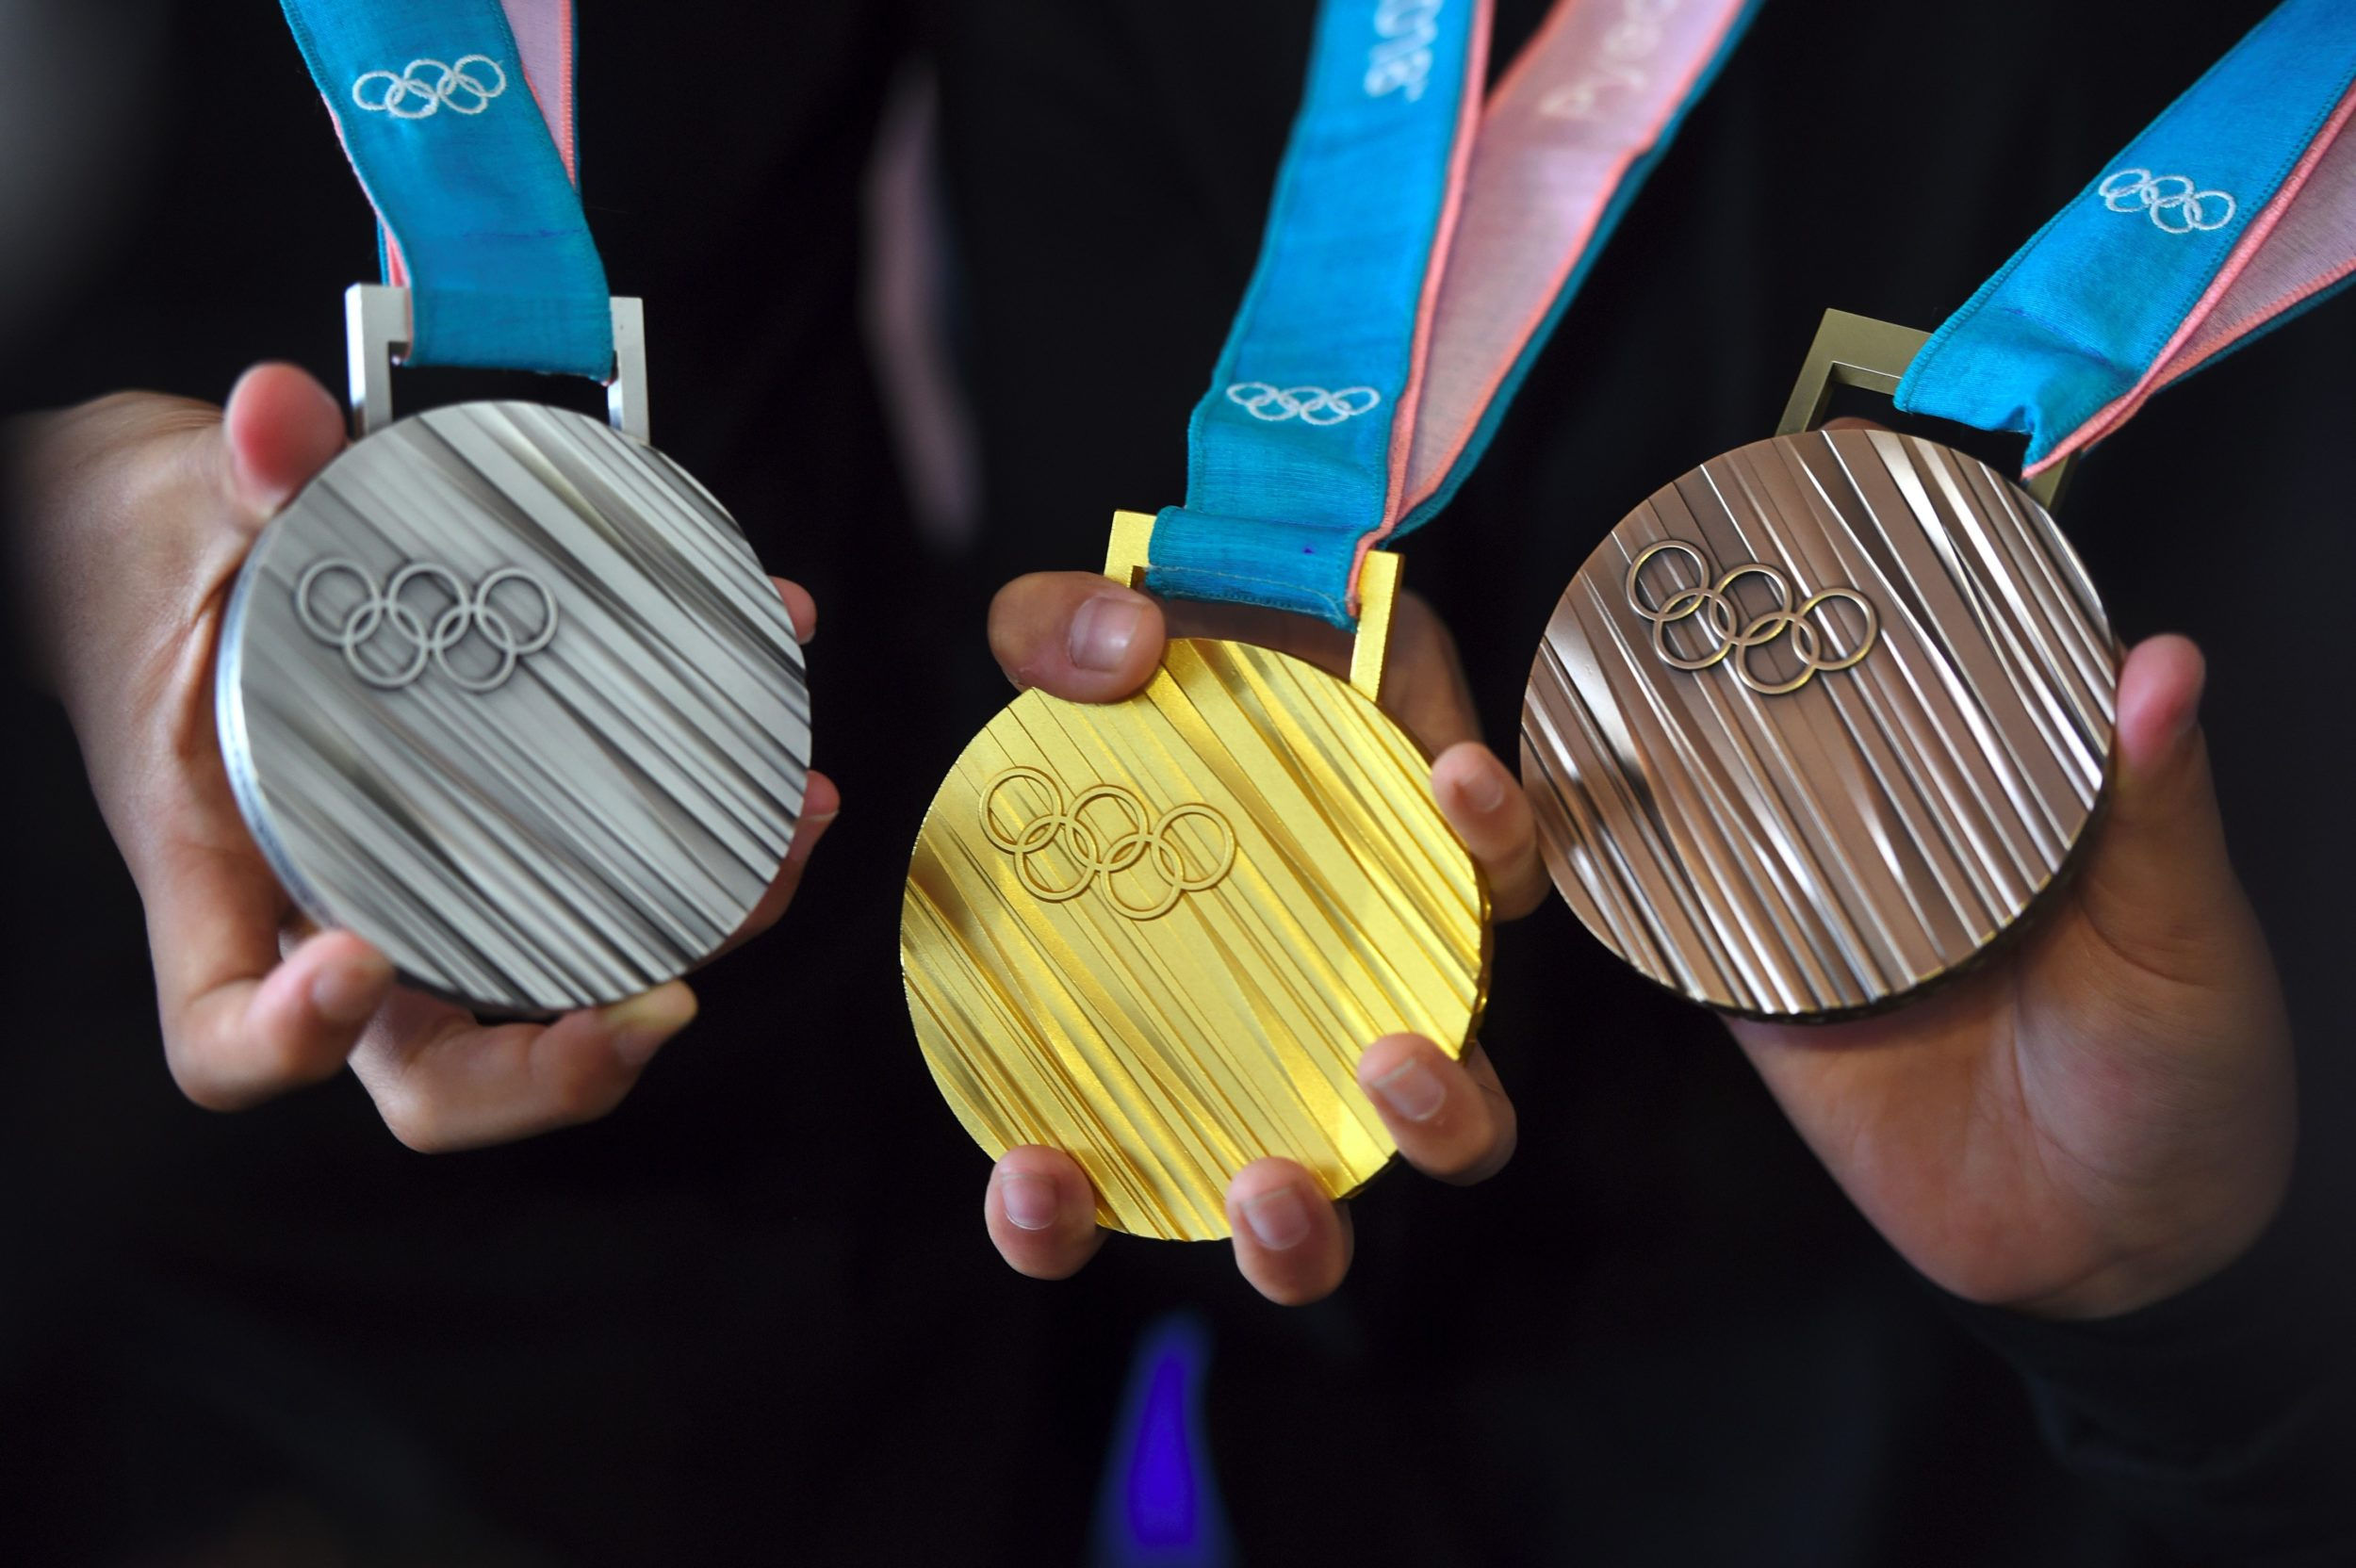 Which country has won the most Winter Olympics medals so far? It's not the United States